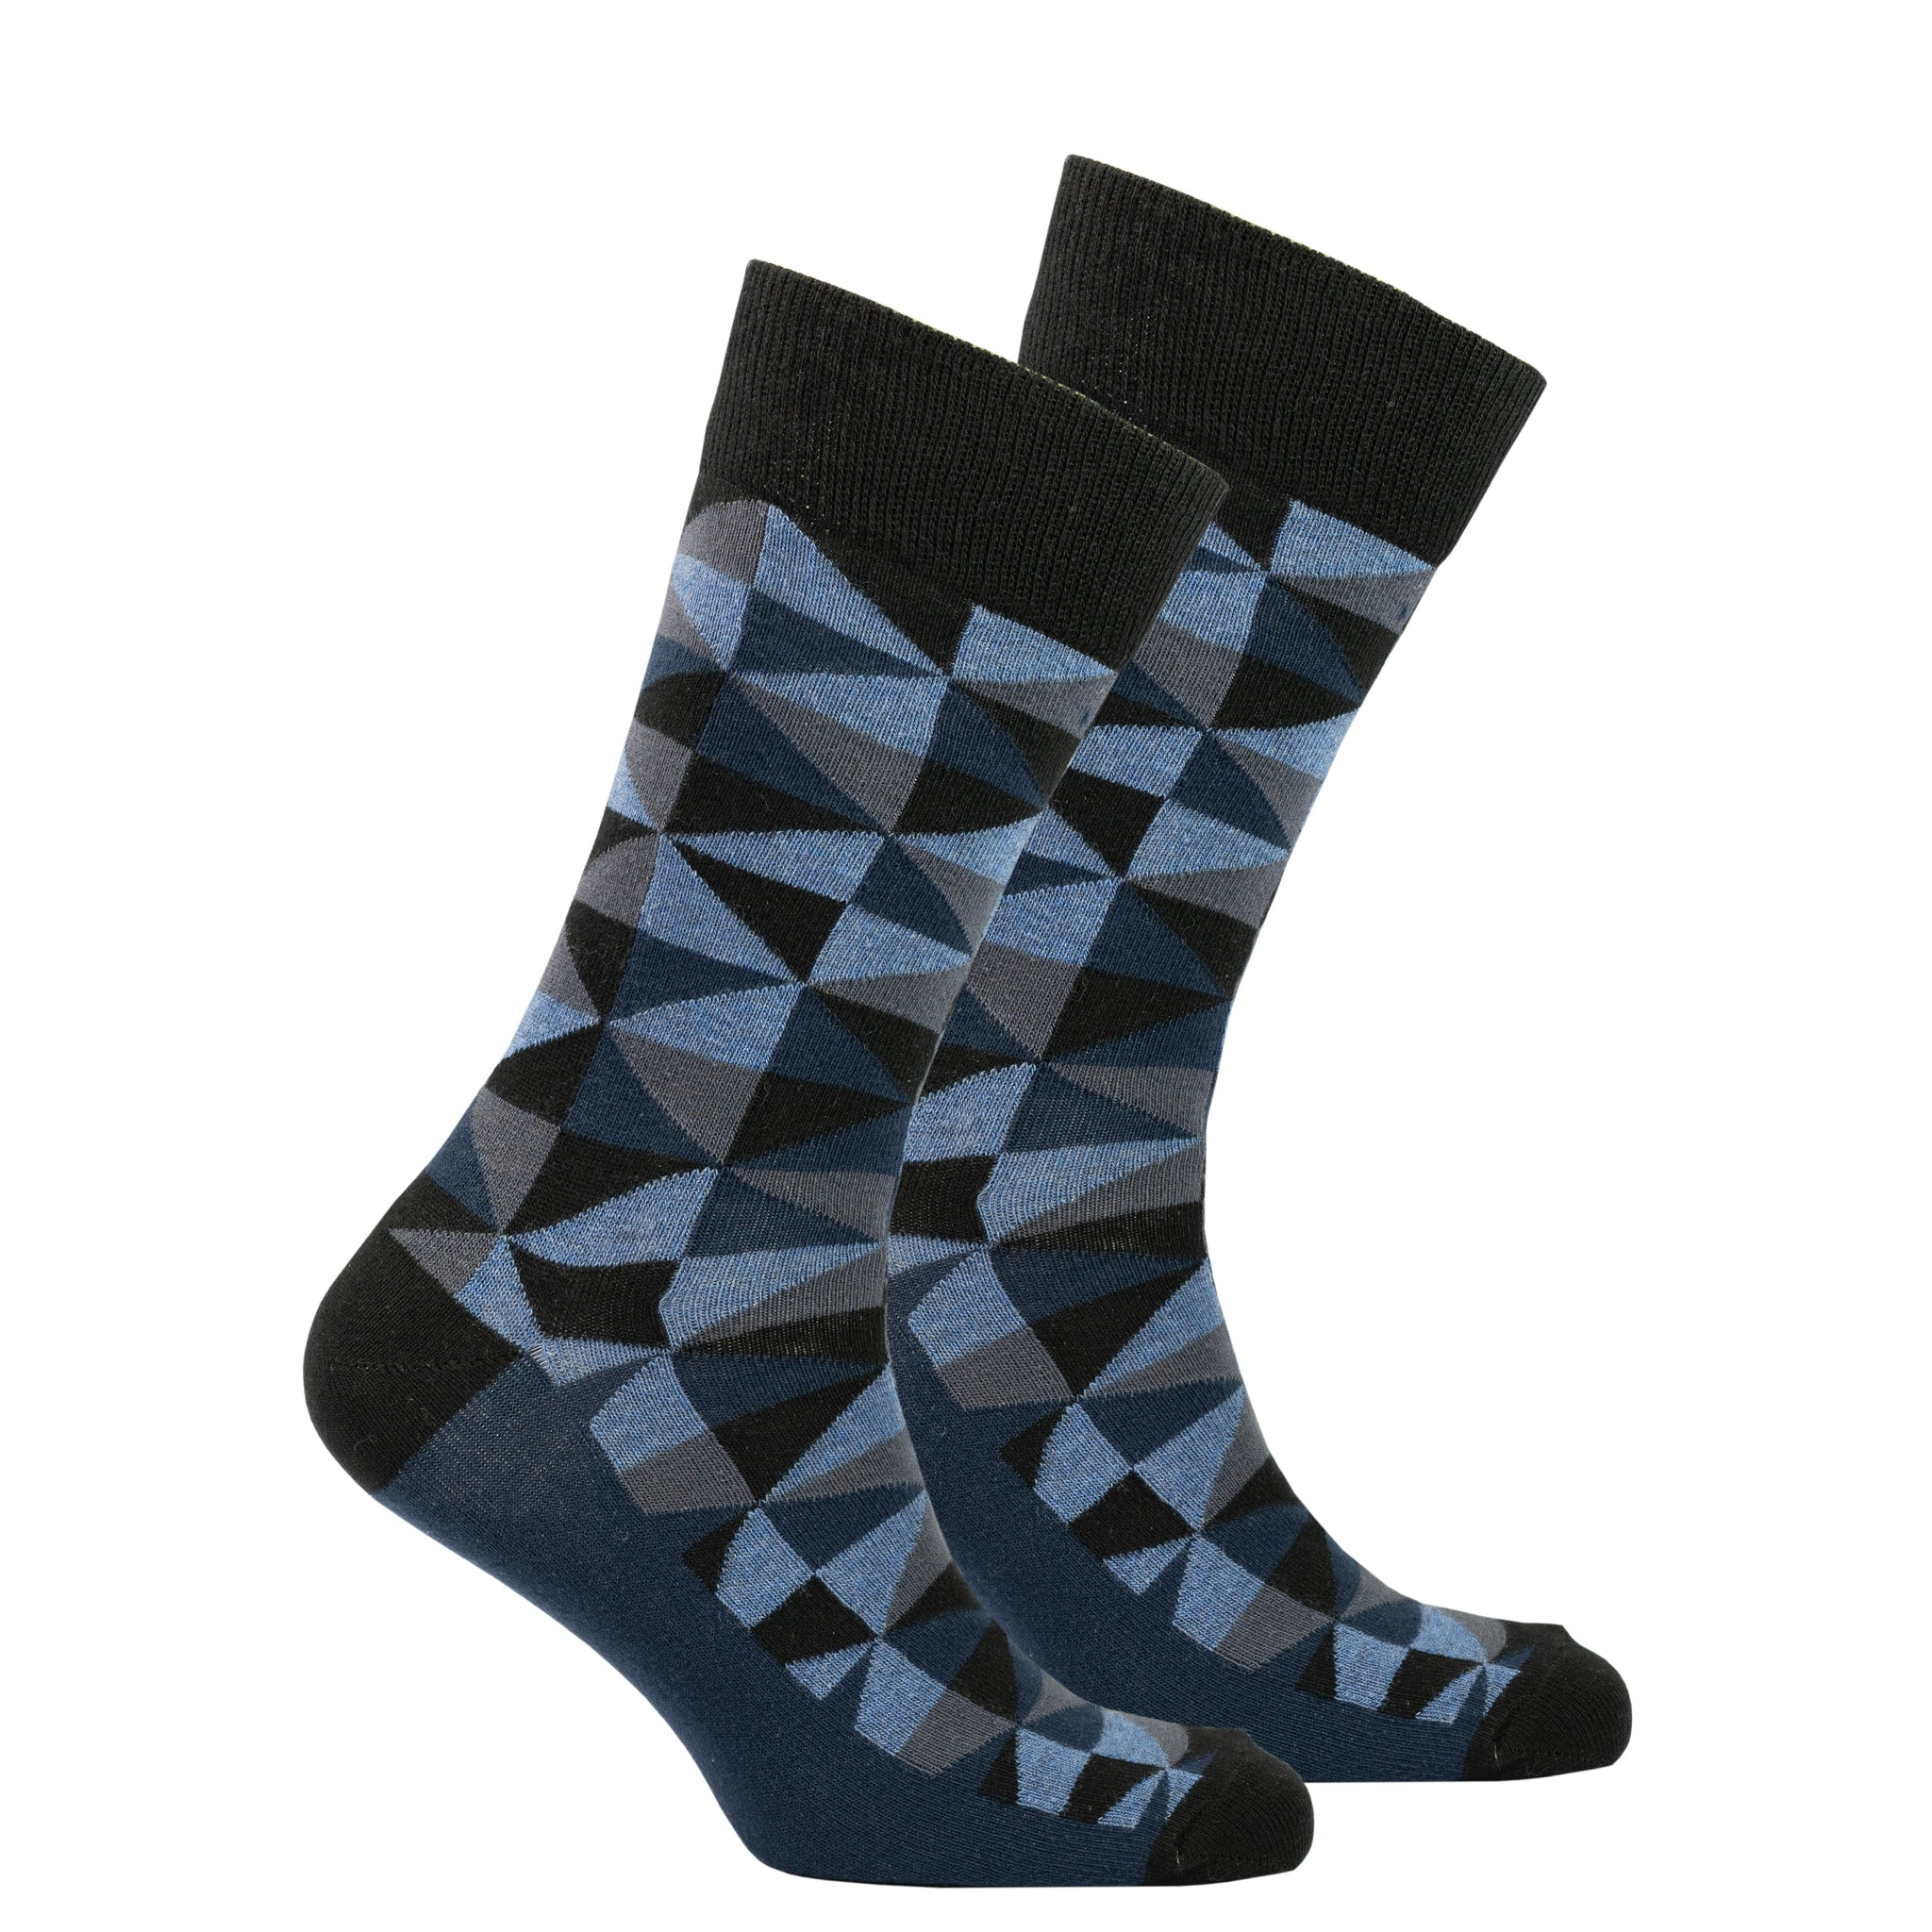 Men's Azure Triangle Socks black and blue